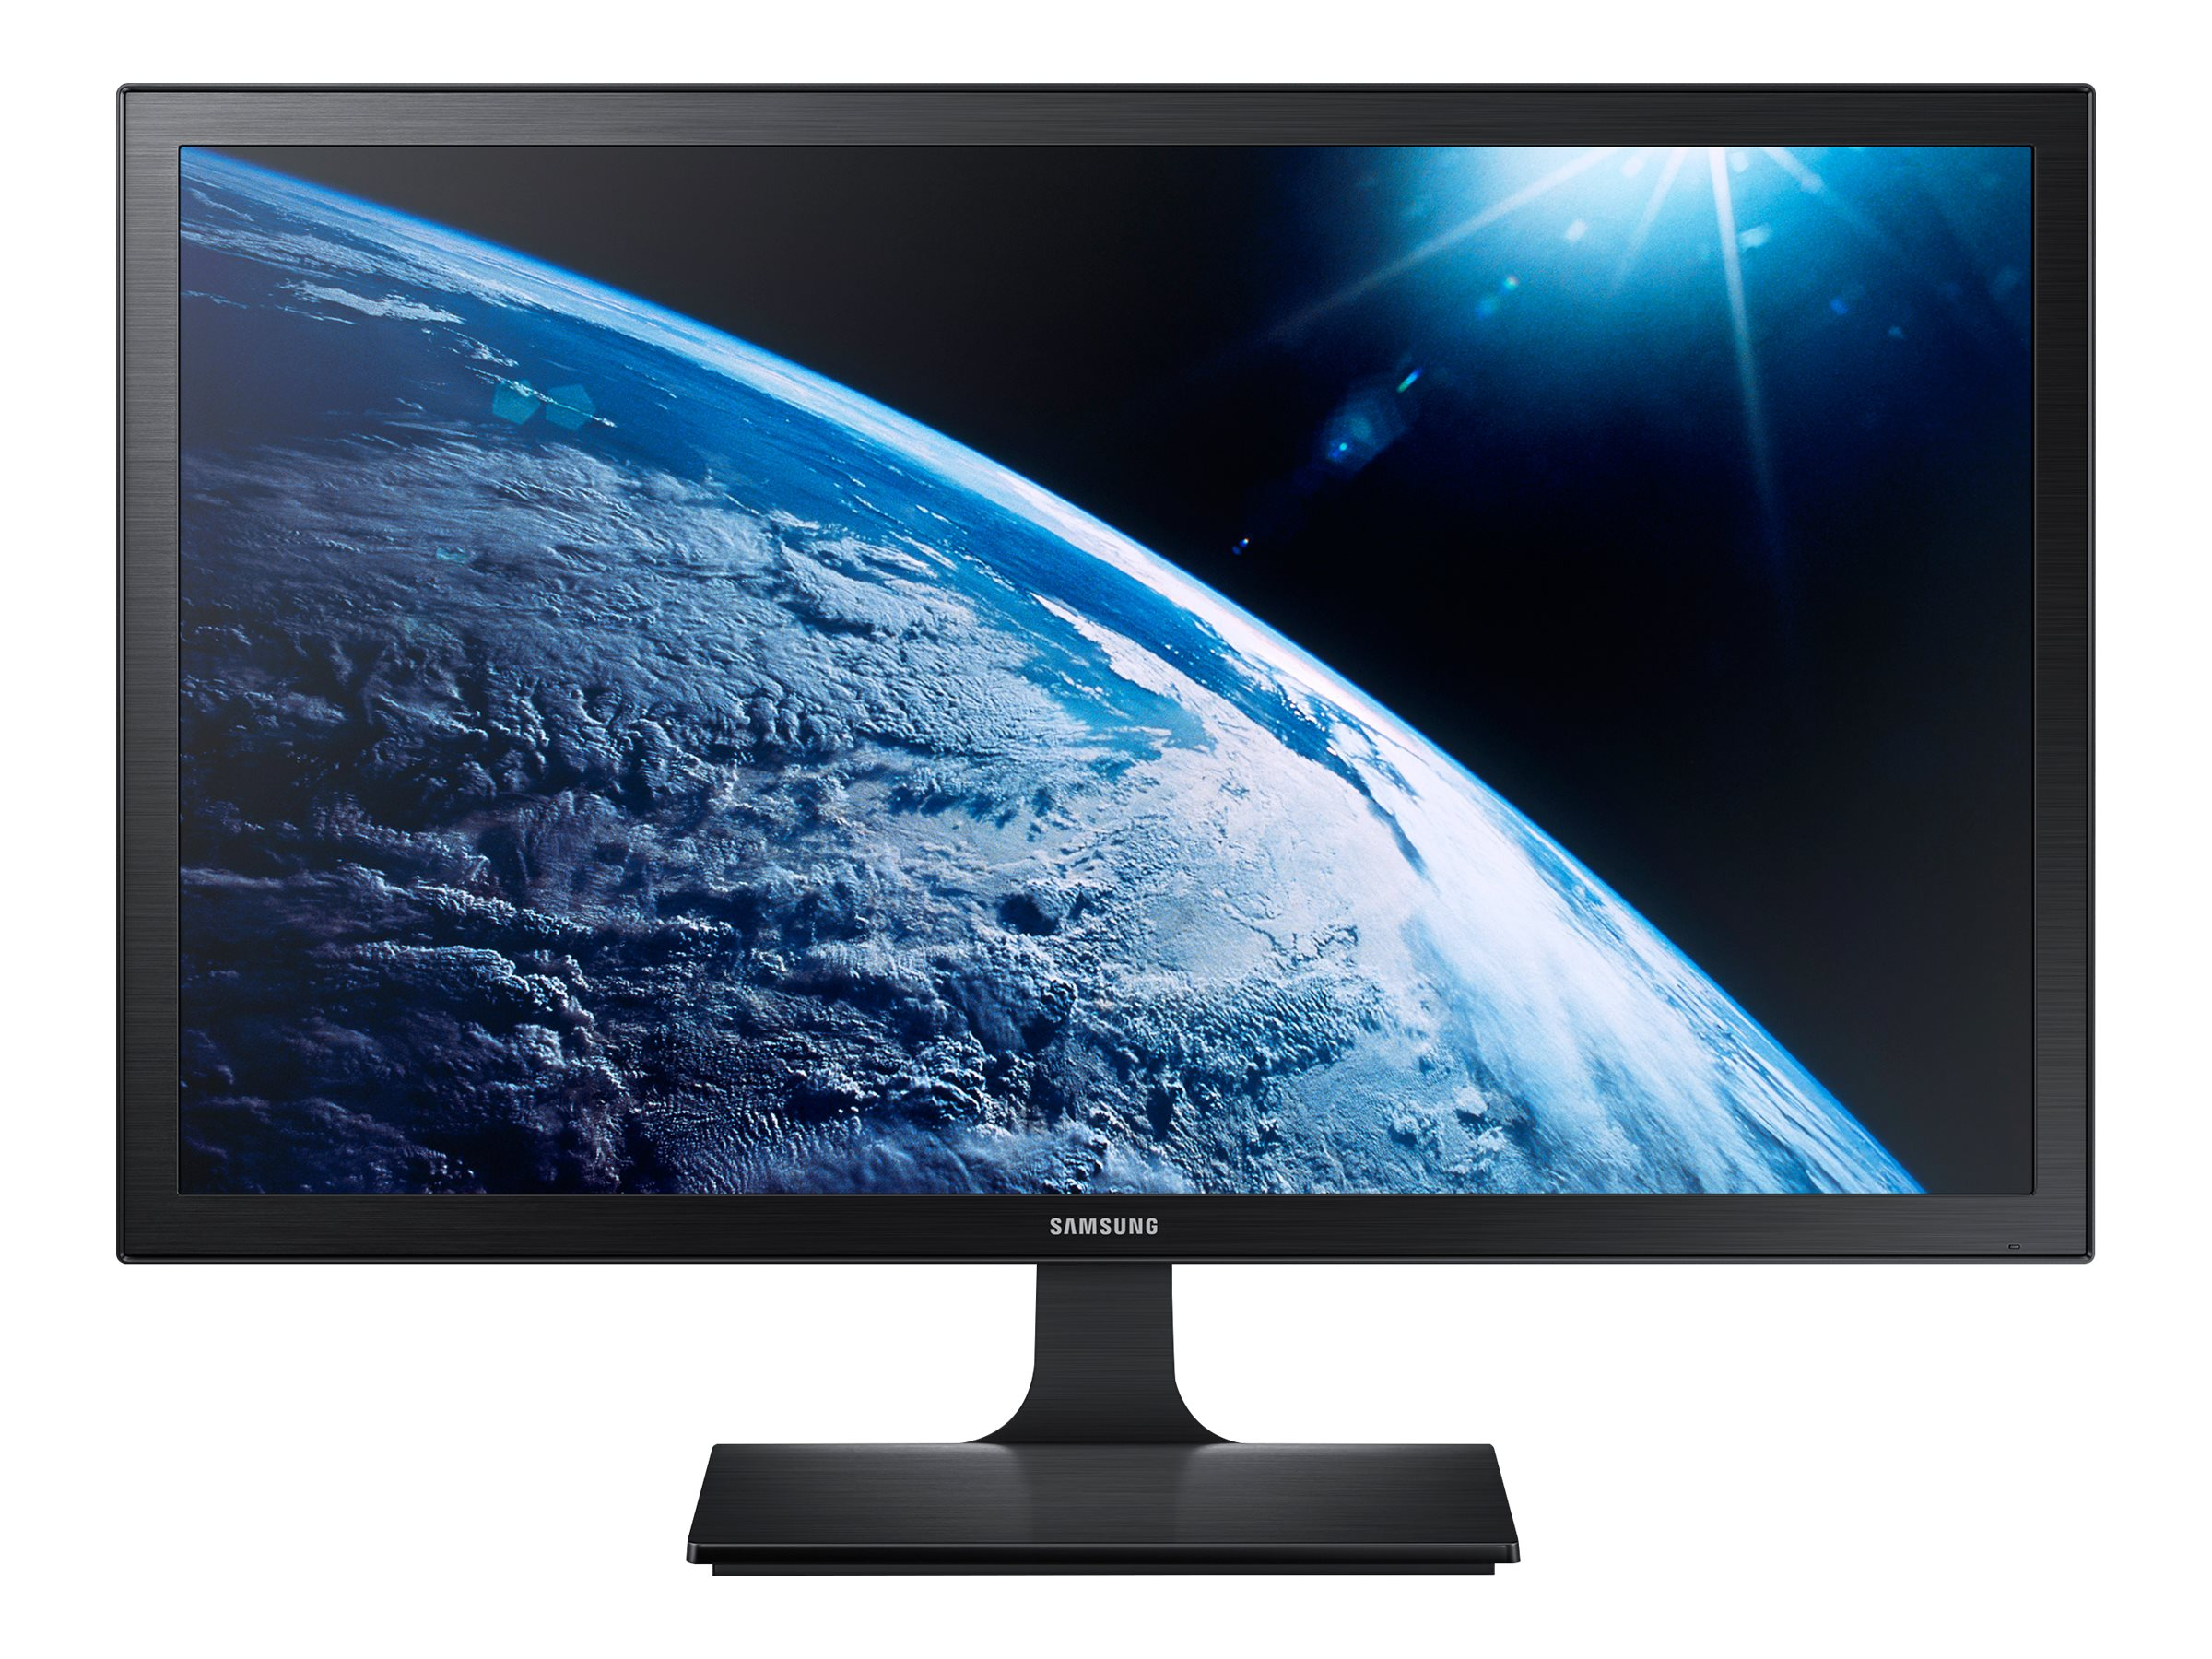 Samsung 21.5 SE310 Full HD LED-LCD Monitor, Black